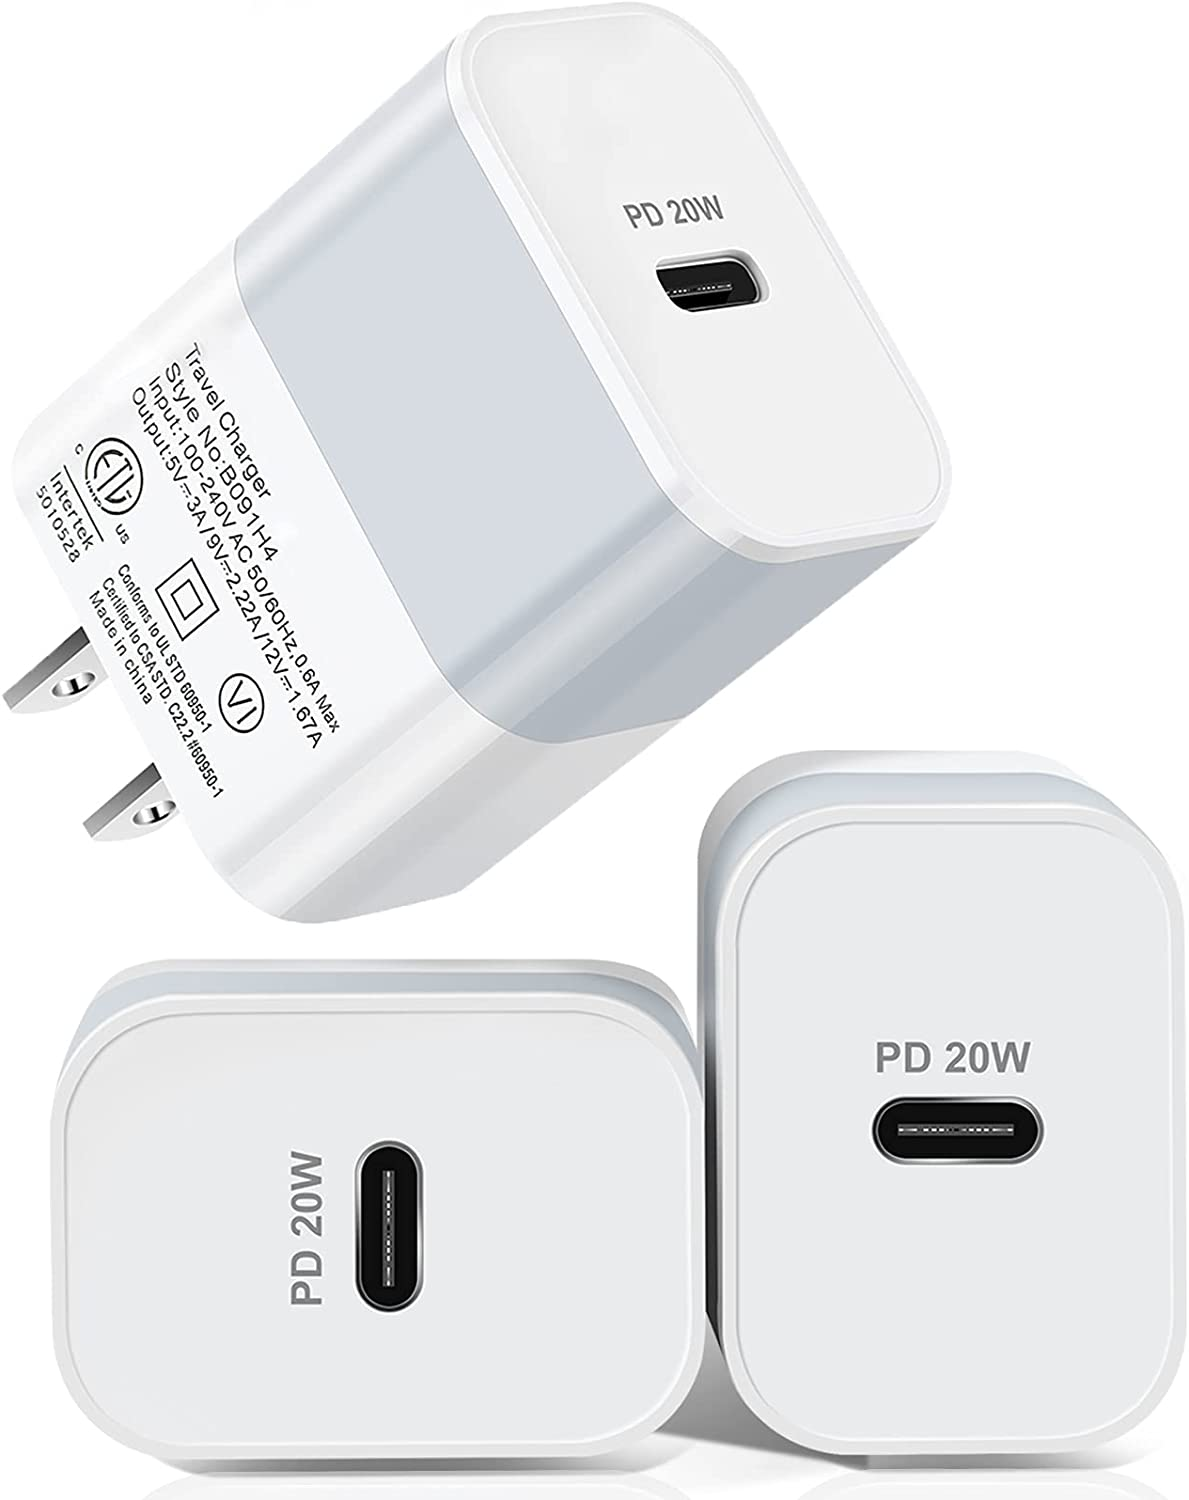 USB C Charger ,20W iPhone Fast Wal Shipping included Cellphone Max 82% OFF Type